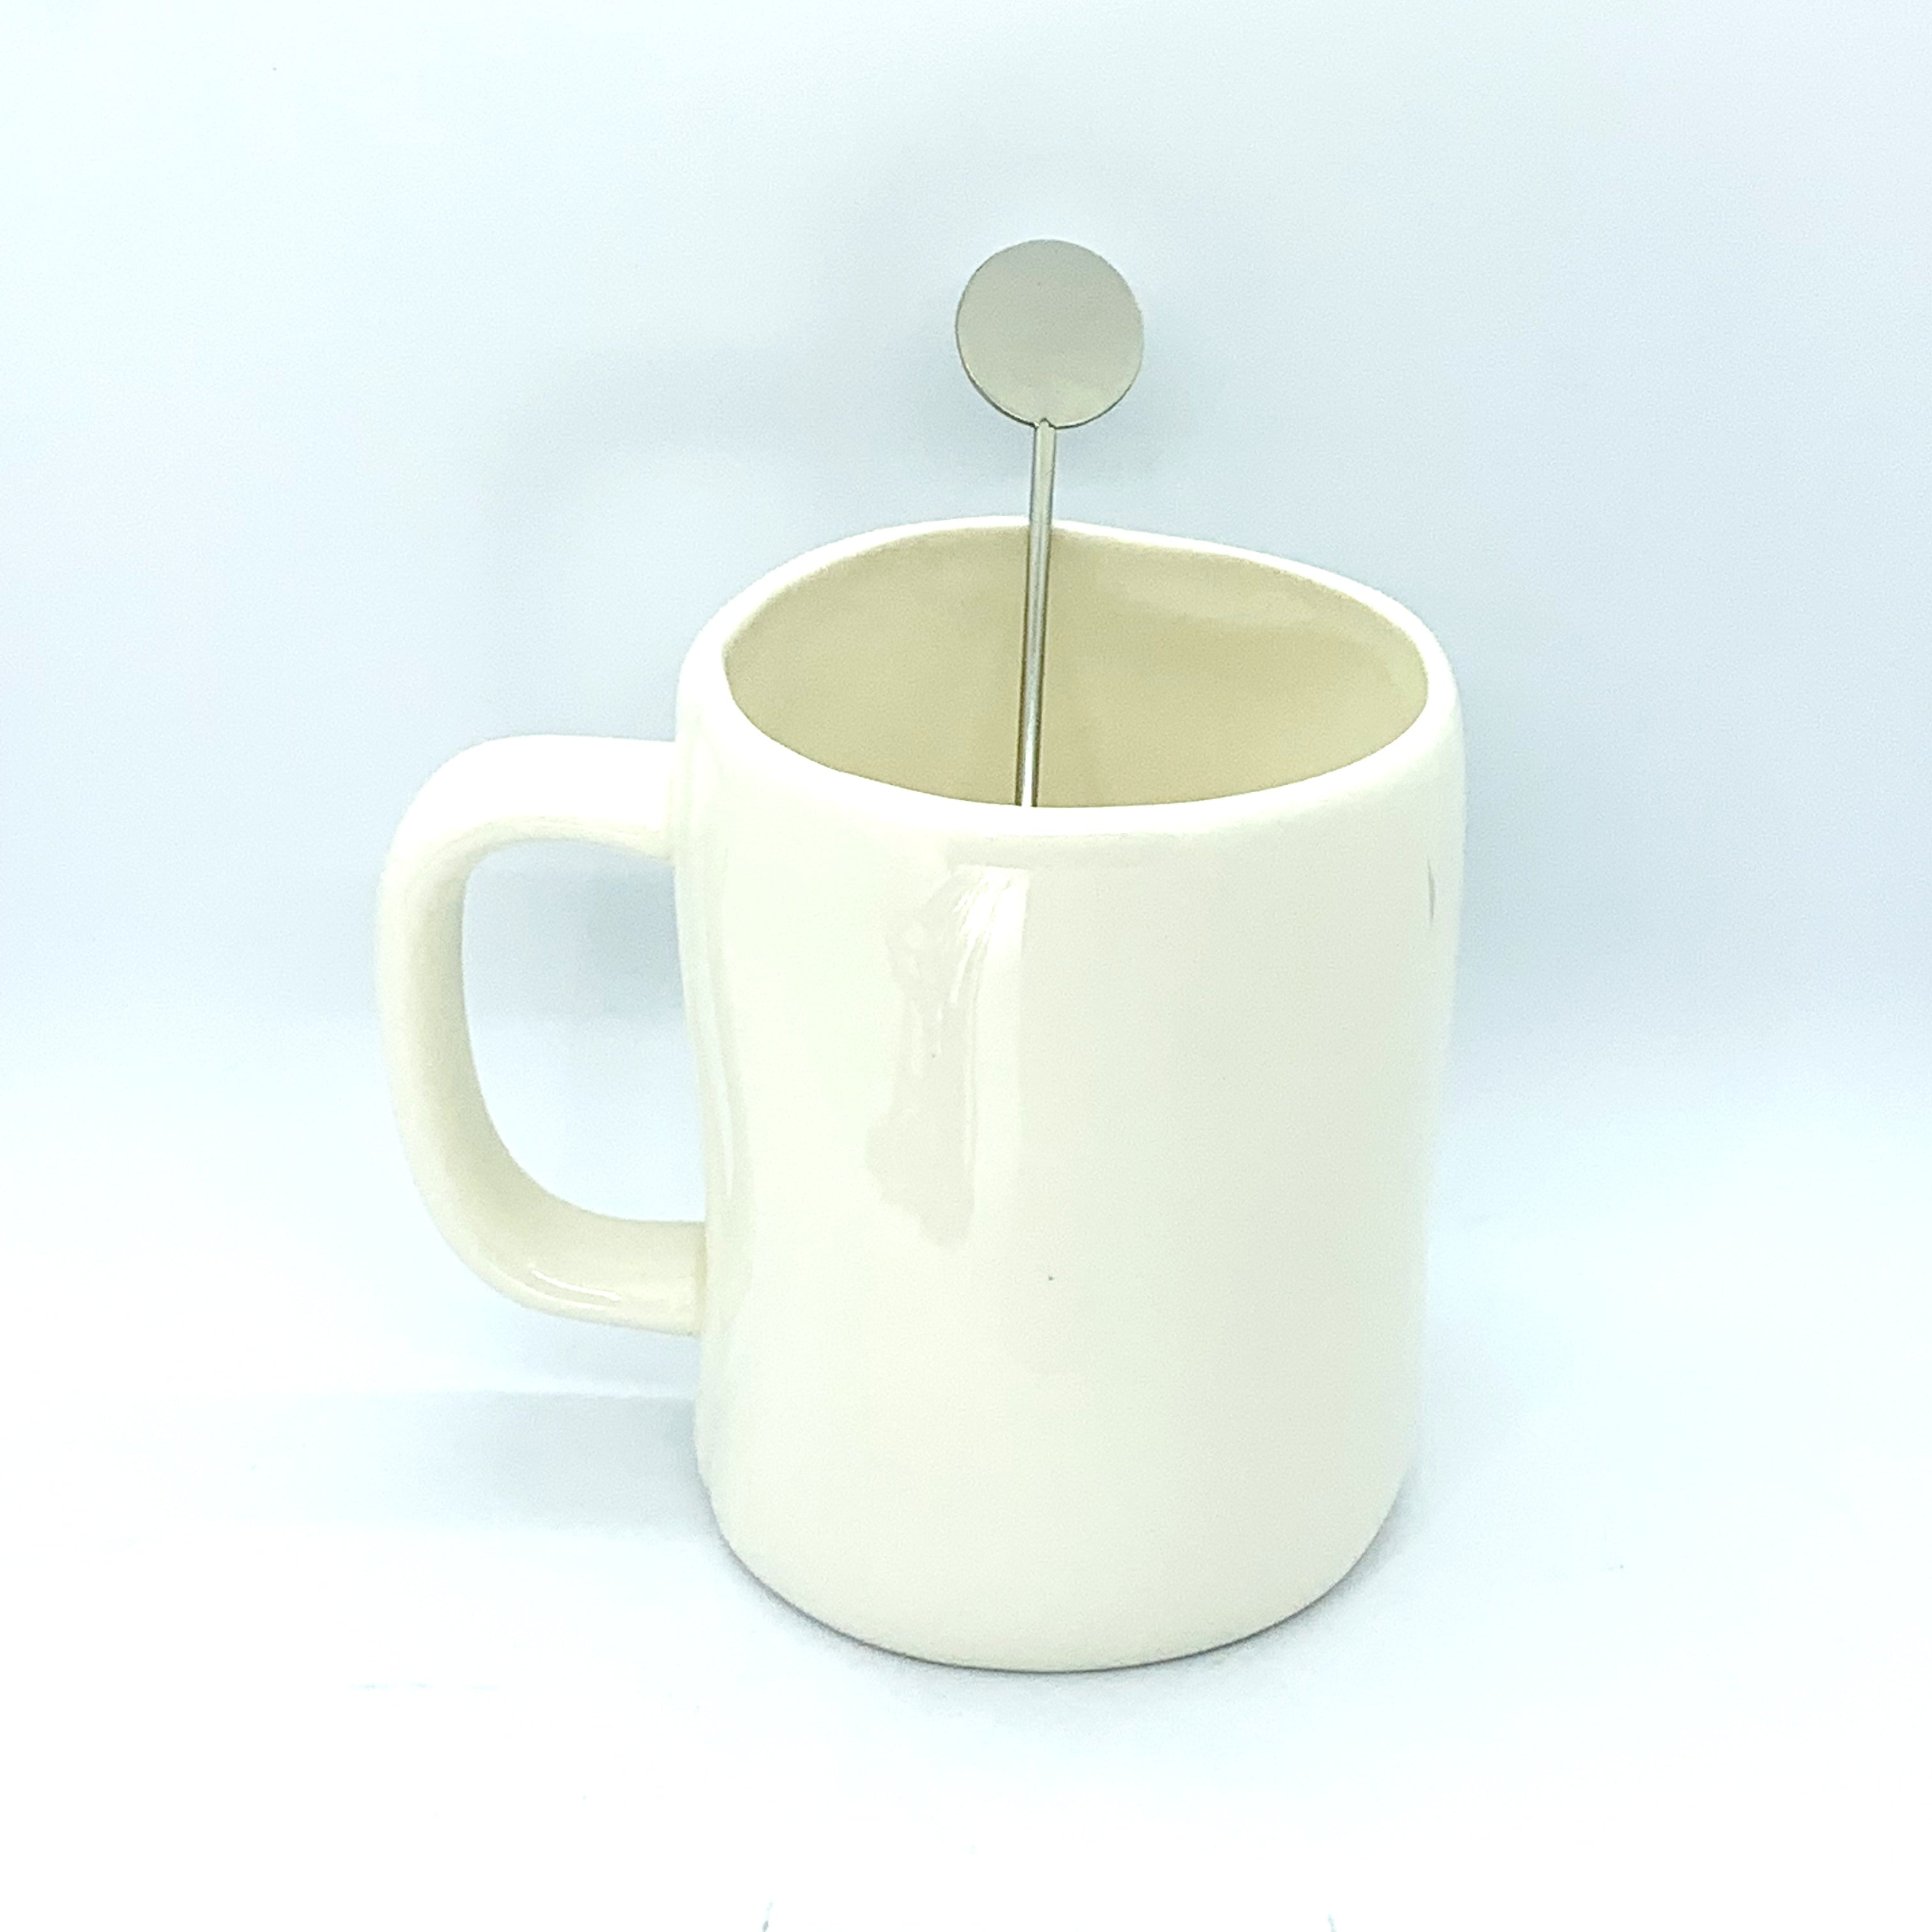 Coffee Stirrer - You Give Me The Jitters